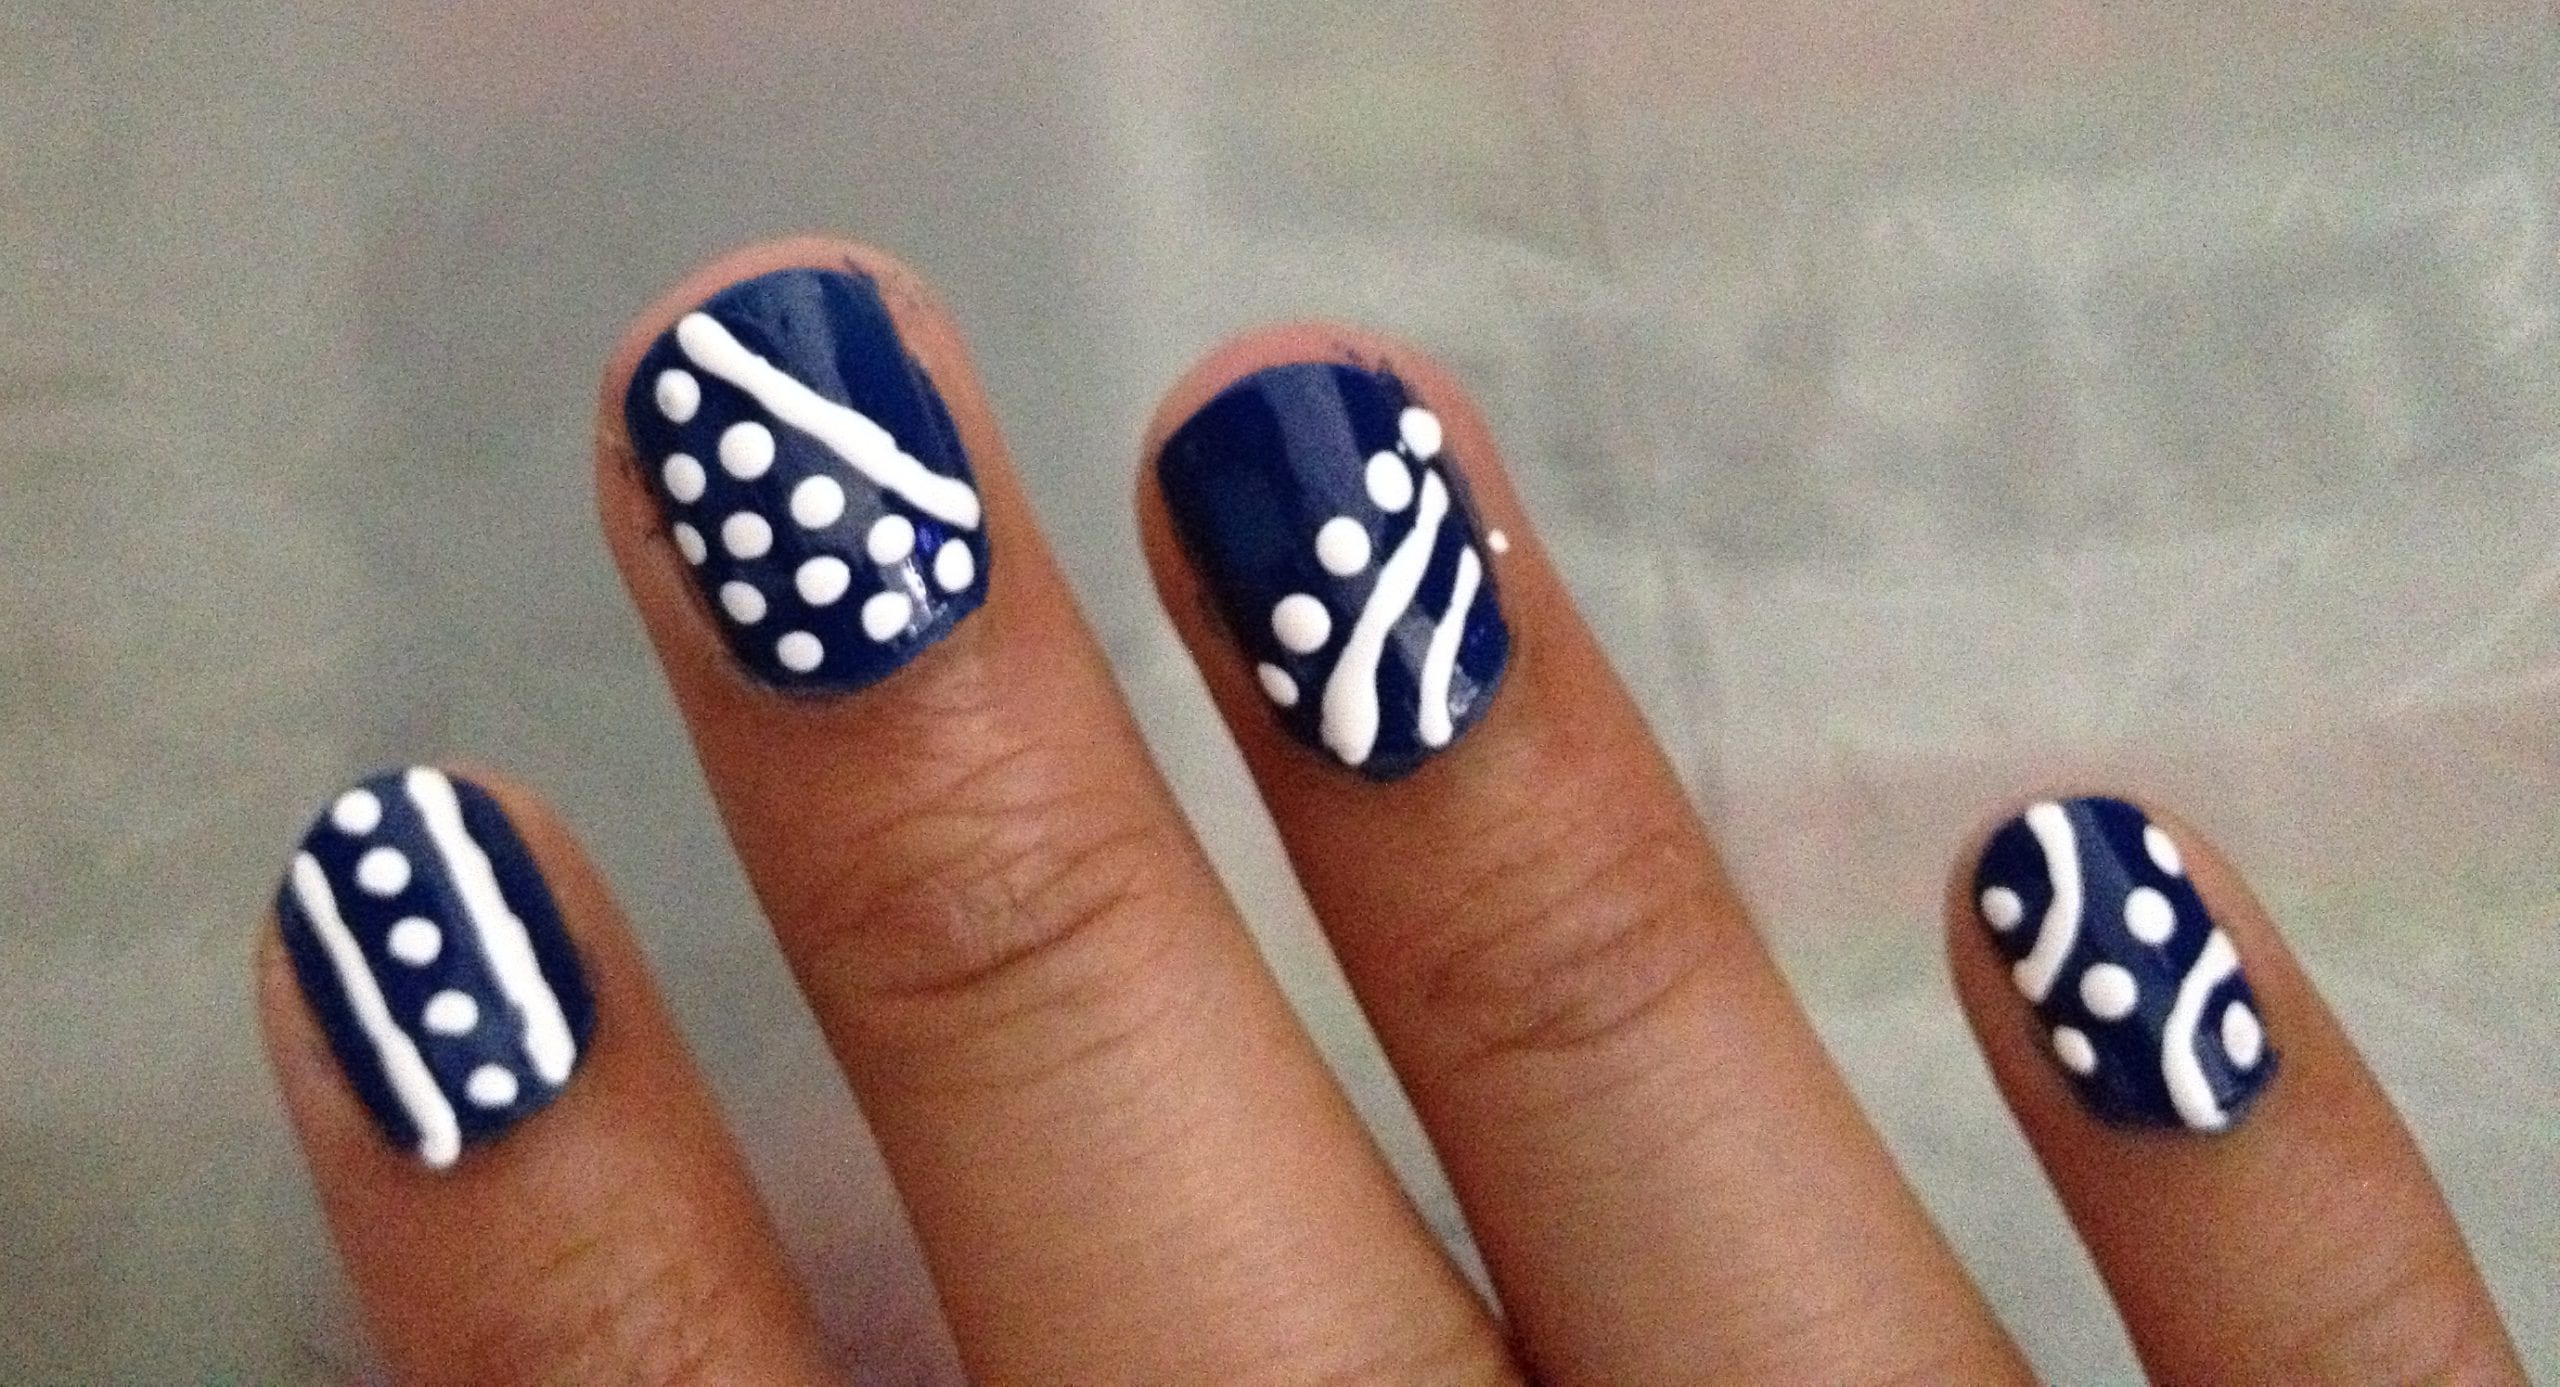 Unique Nail Art This Chic Design Is Super Easy And The Best Part That Doesn T Need To Be Perfect Choose Any 2 Of Your Favorite Colors Go Well